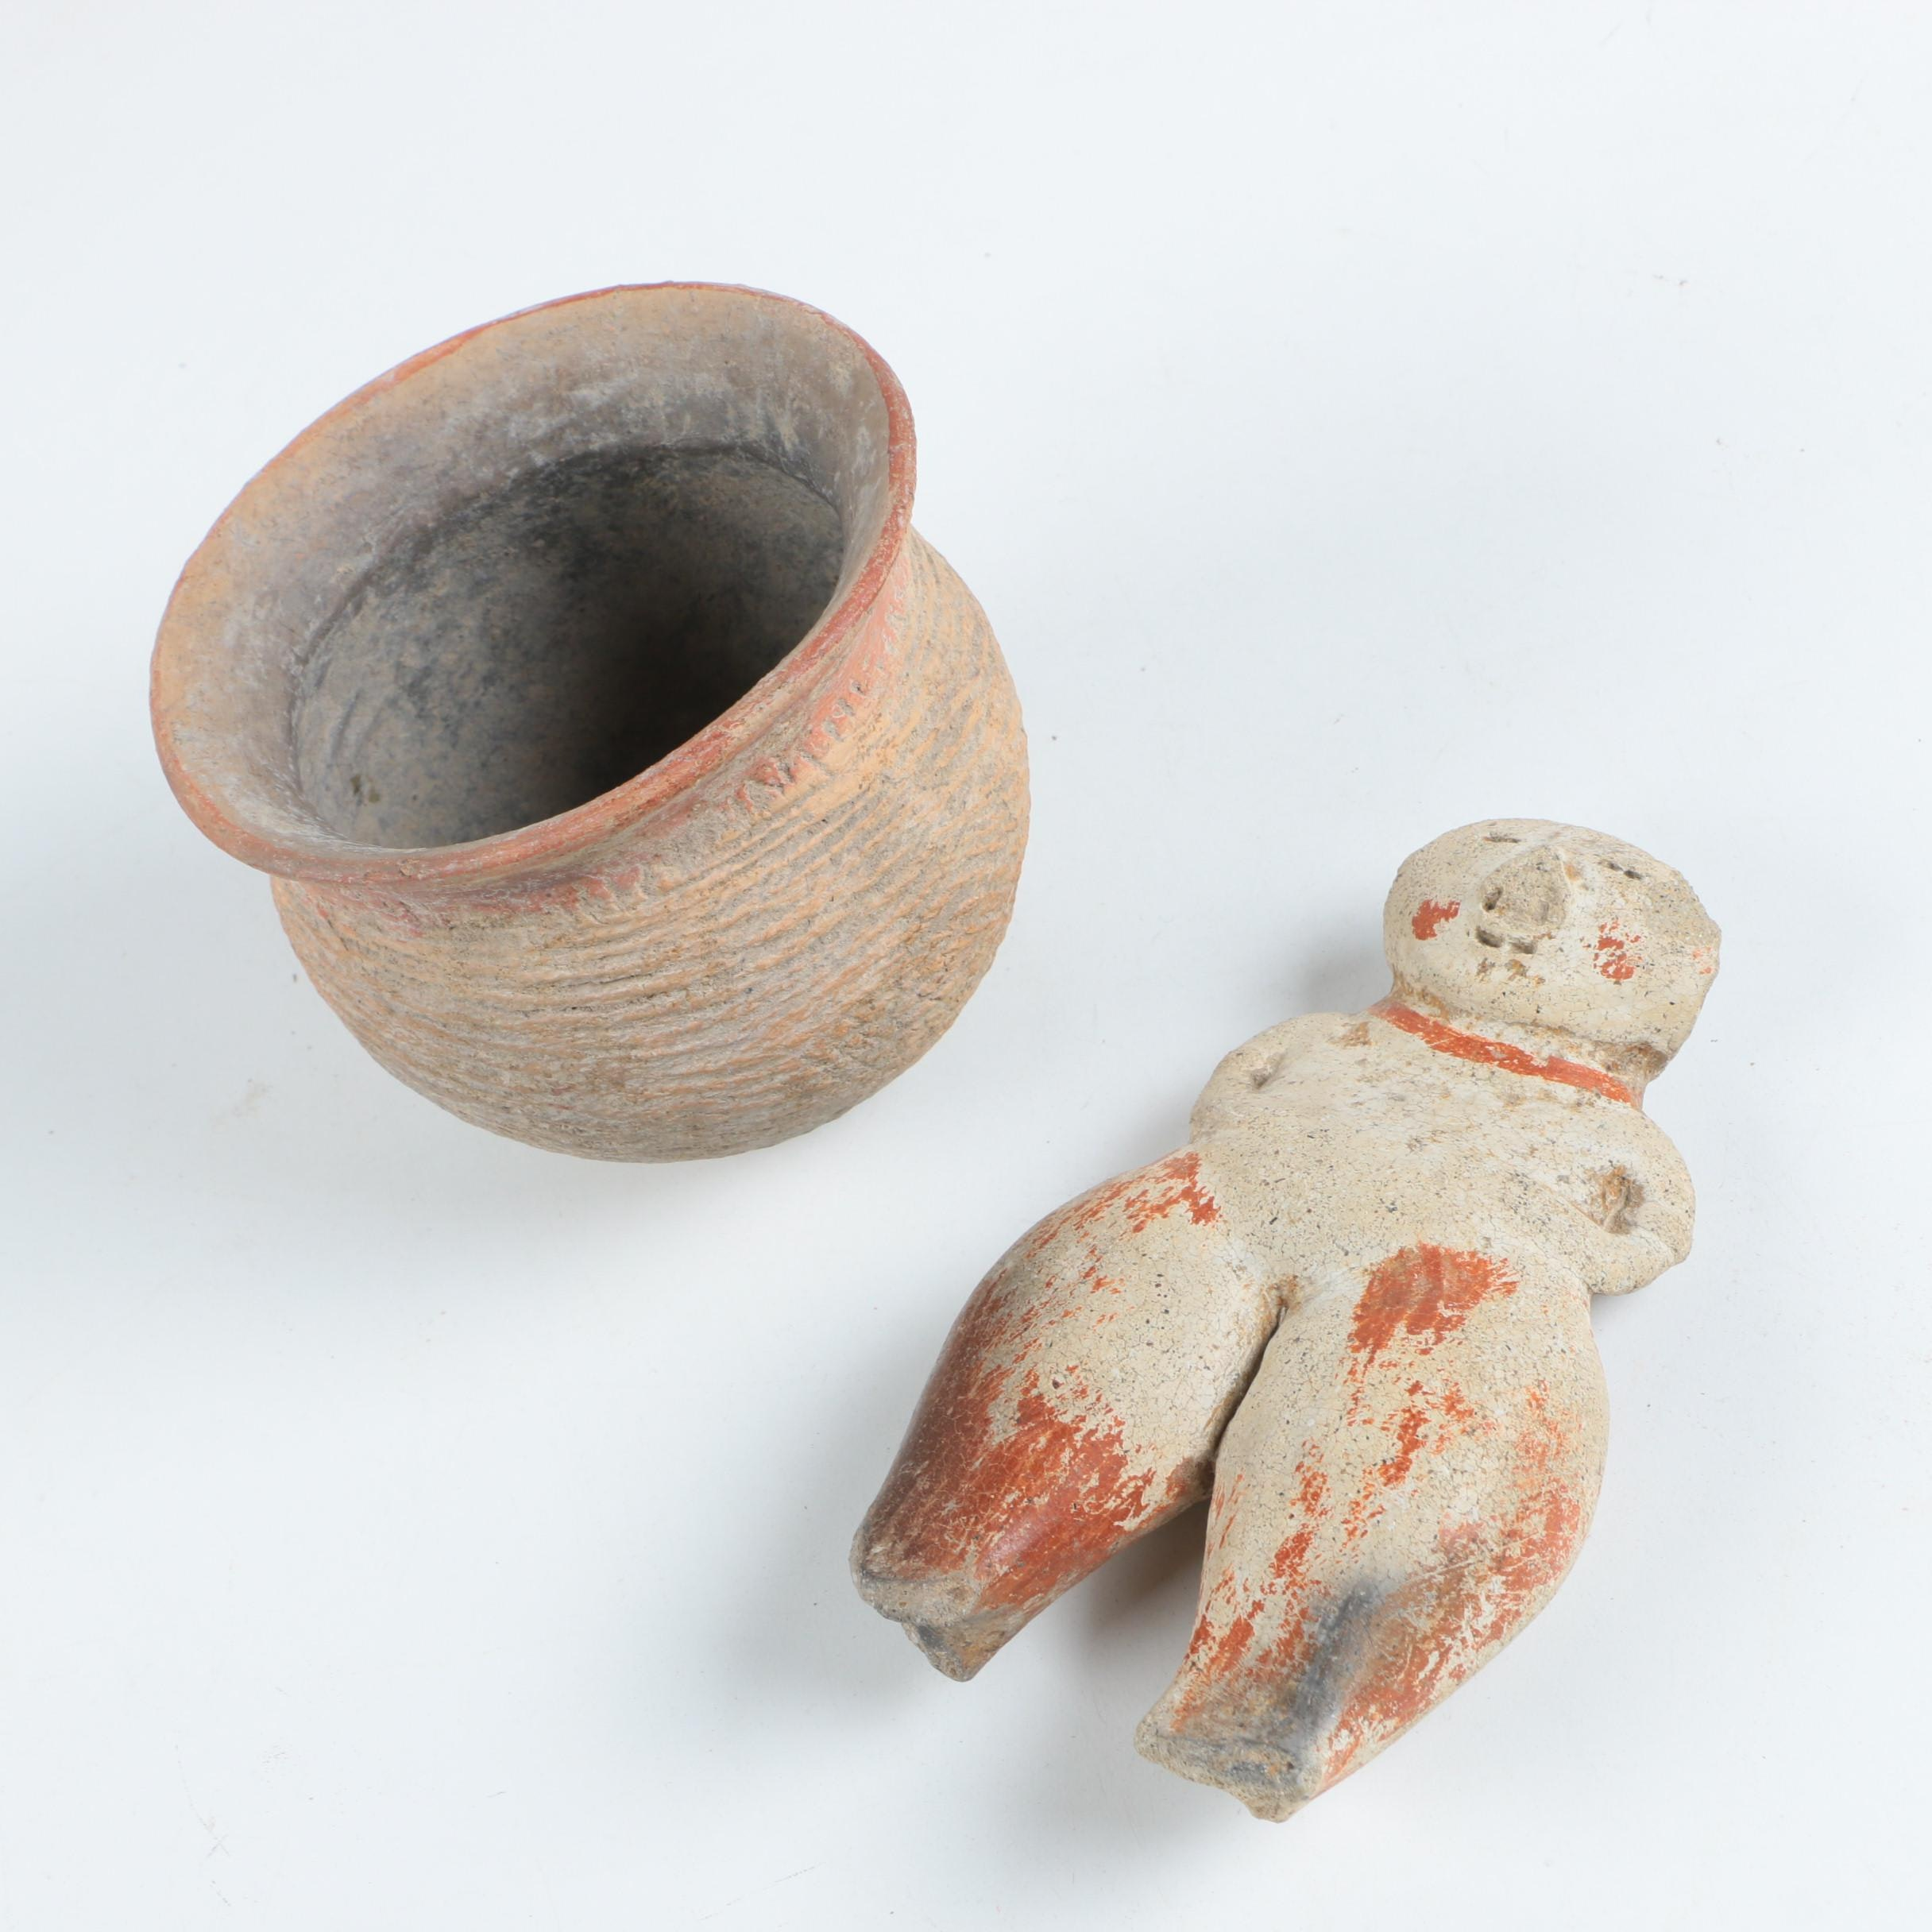 Antique Chinese Clay Pot and Figurine